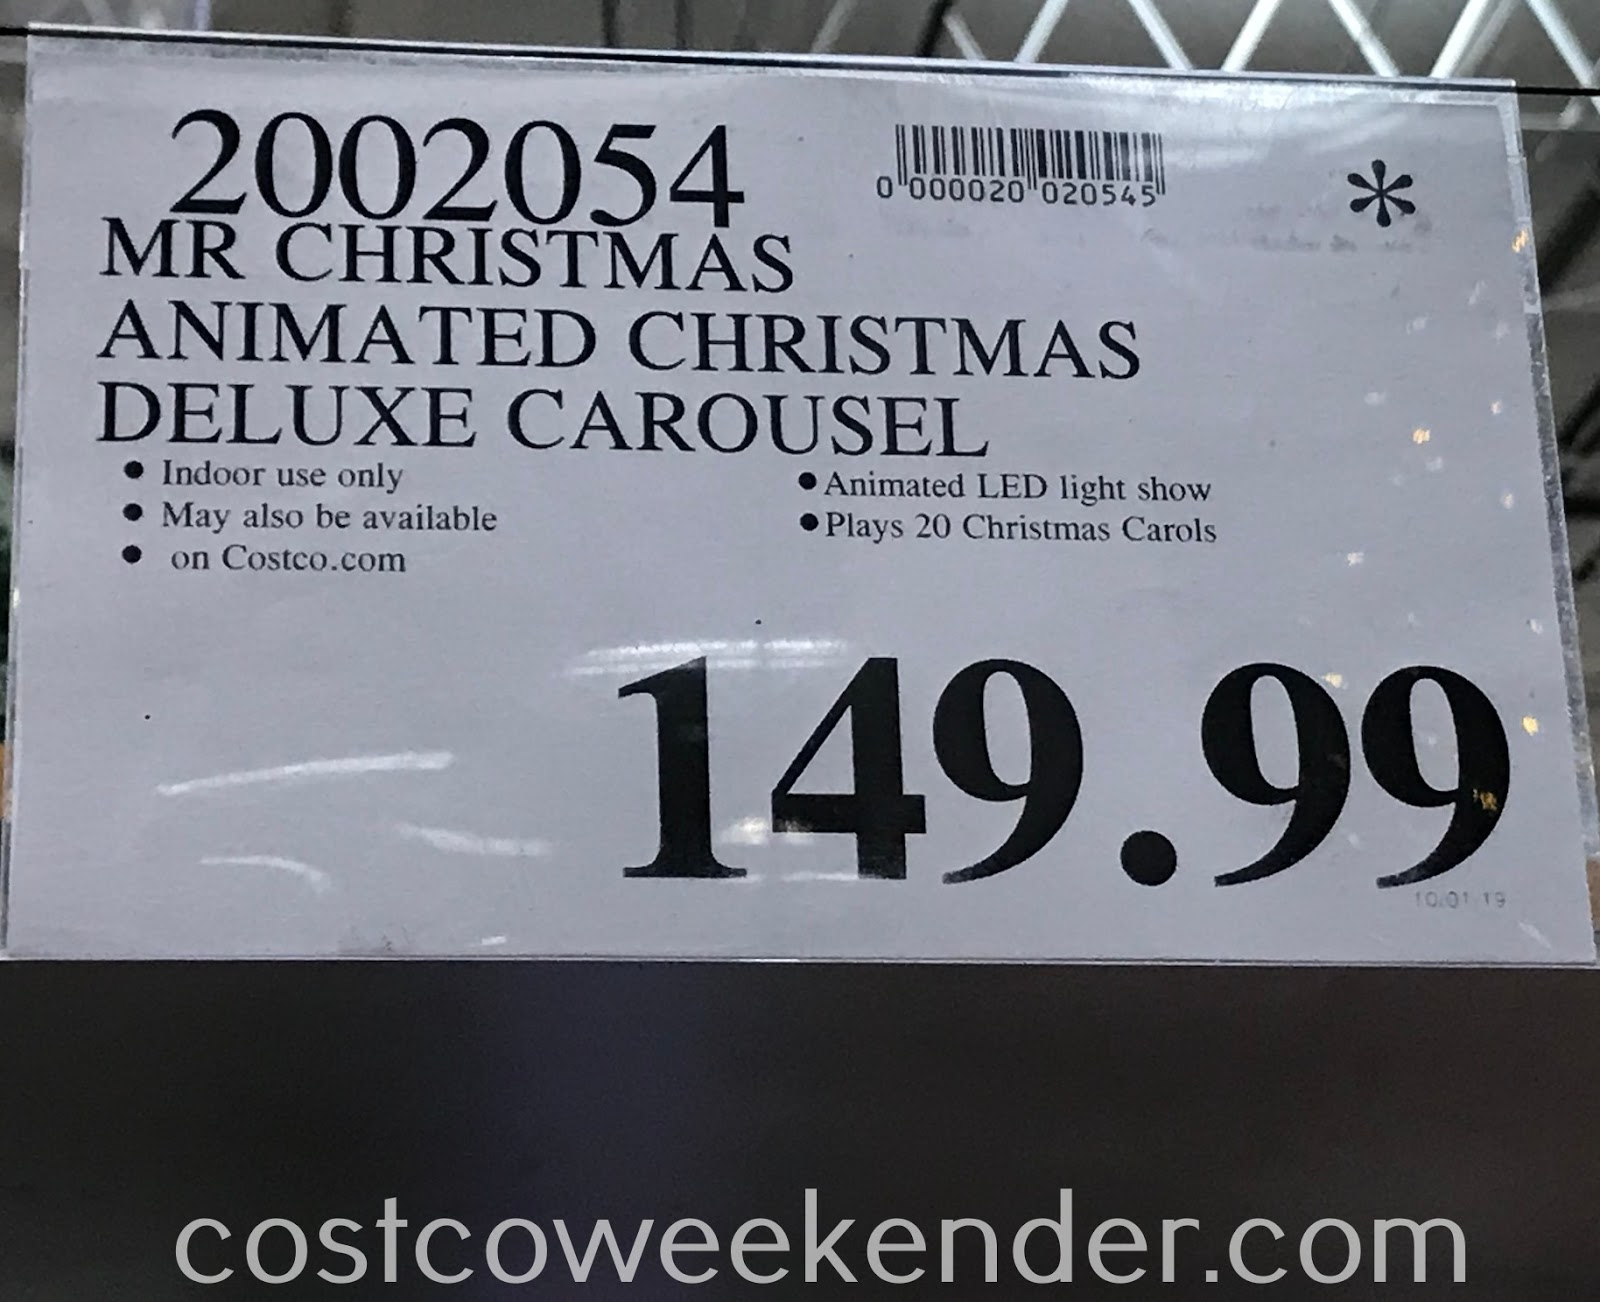 Deal for the Mr. Christmas Deluxe Carousel at Costco